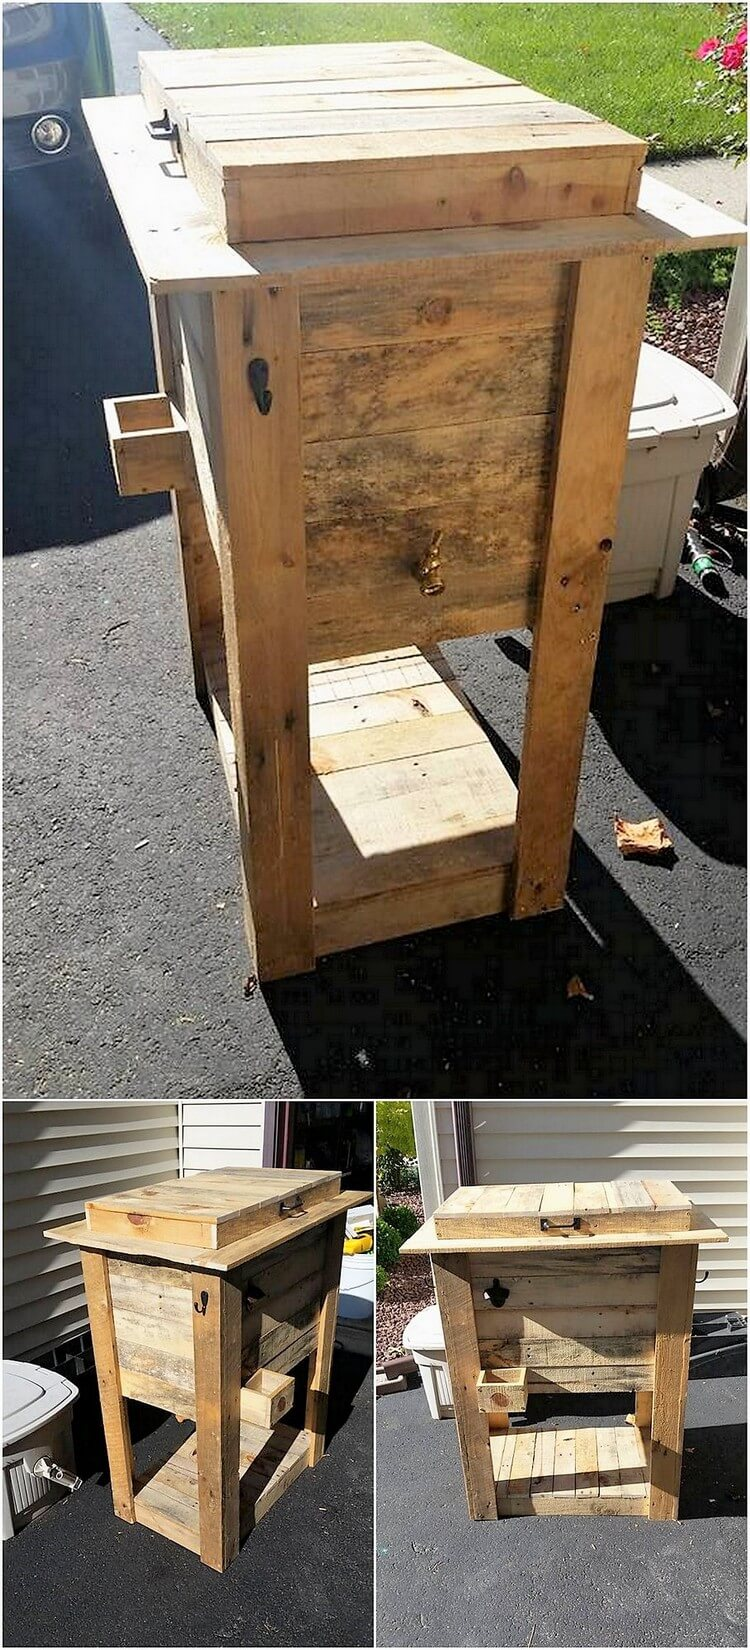 Recycled Pallet Cooler